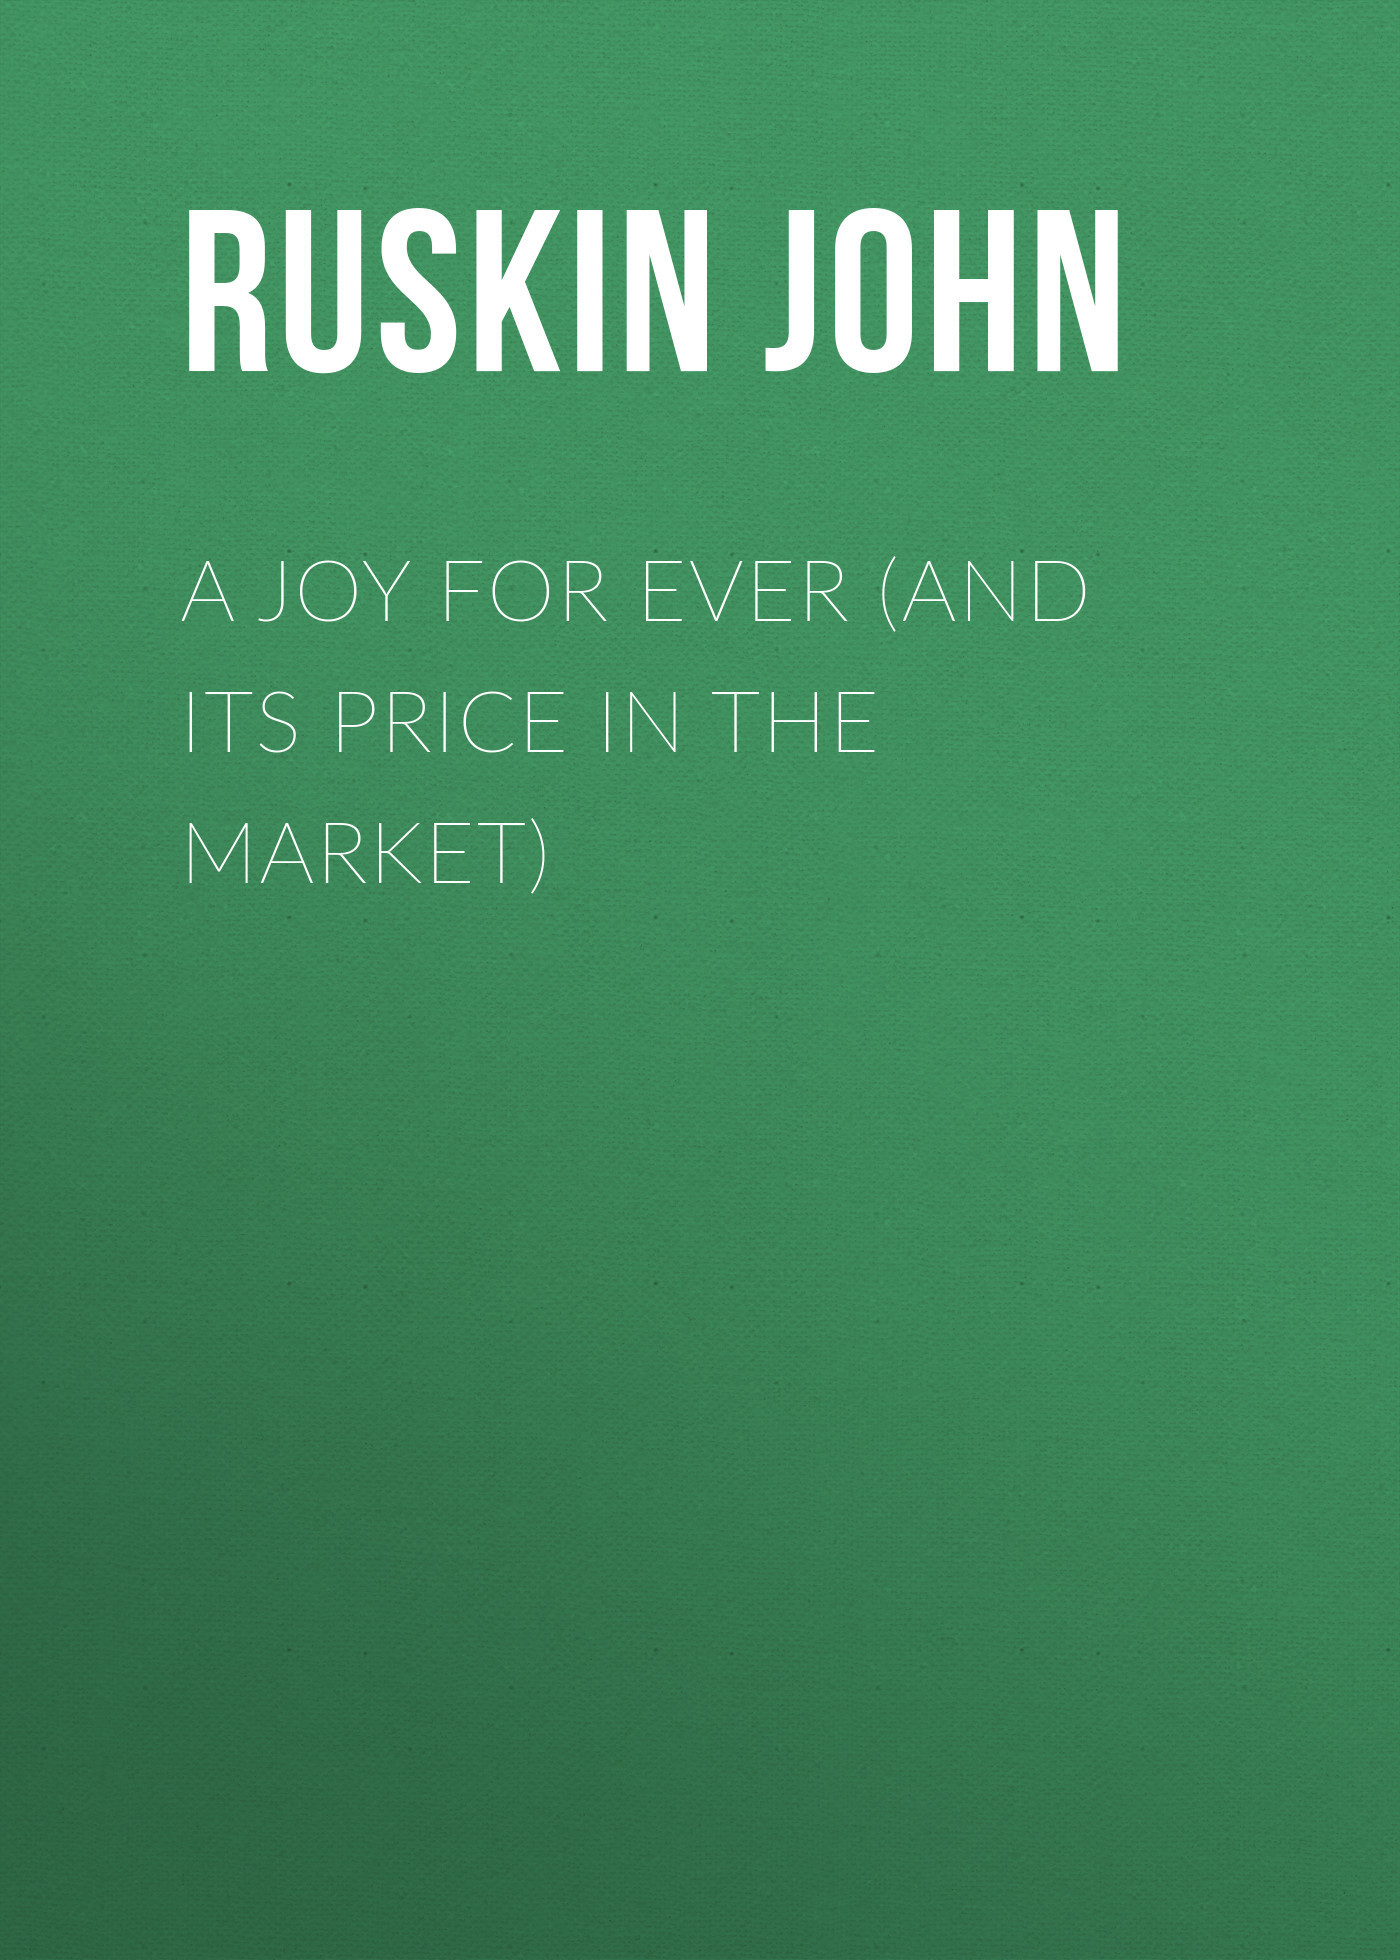 Ruskin John A Joy For Ever (and Its Price in the Market) price label for one line price tag gun white 10 rolls